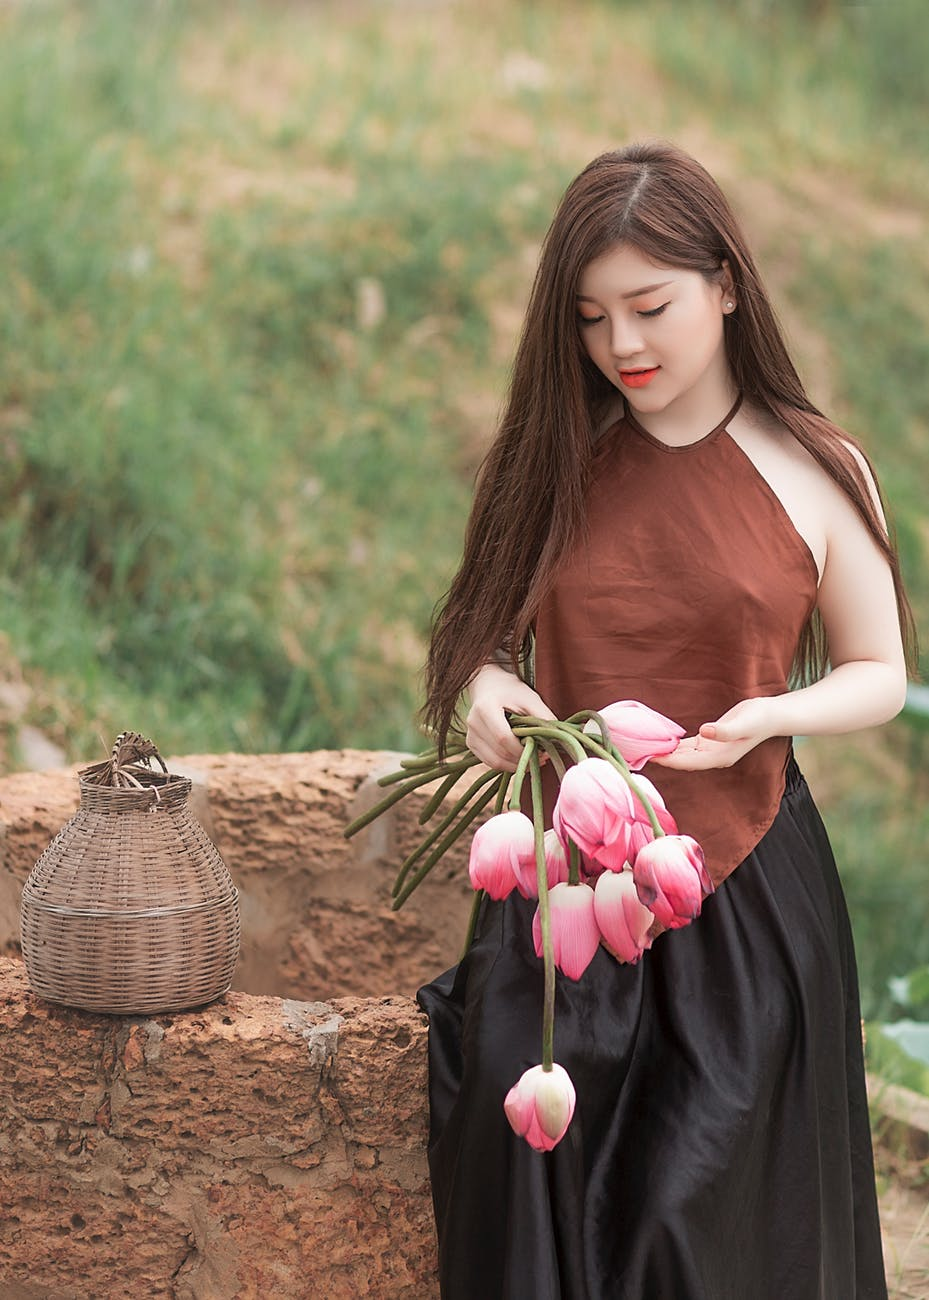 woman holding pink tulips